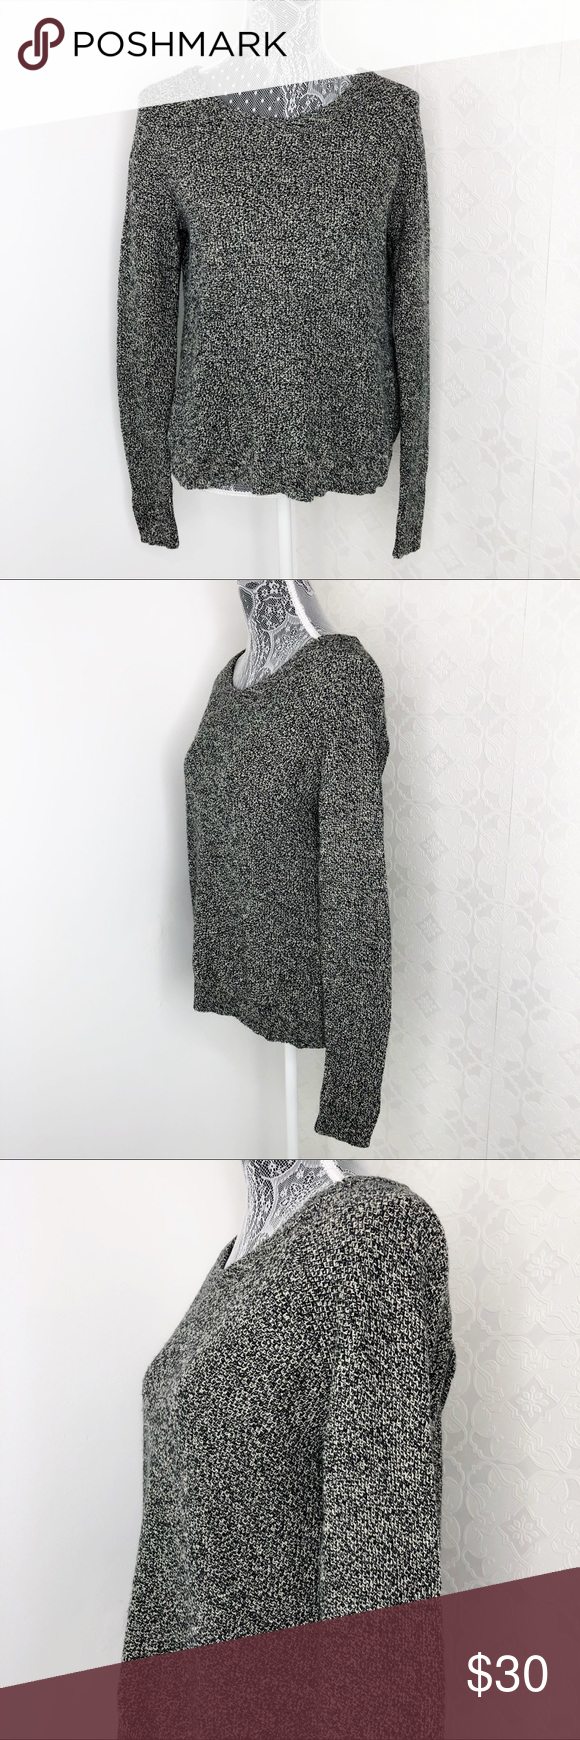 💜Madewell Province Black White Open Back Sweater Madewell Size XS  Black and white long sleeved crew neck sweater  Open back  Excellent pre loved condition  Ships fast  W4 #0202 Madewell Sweaters Crew & Scoop Necks